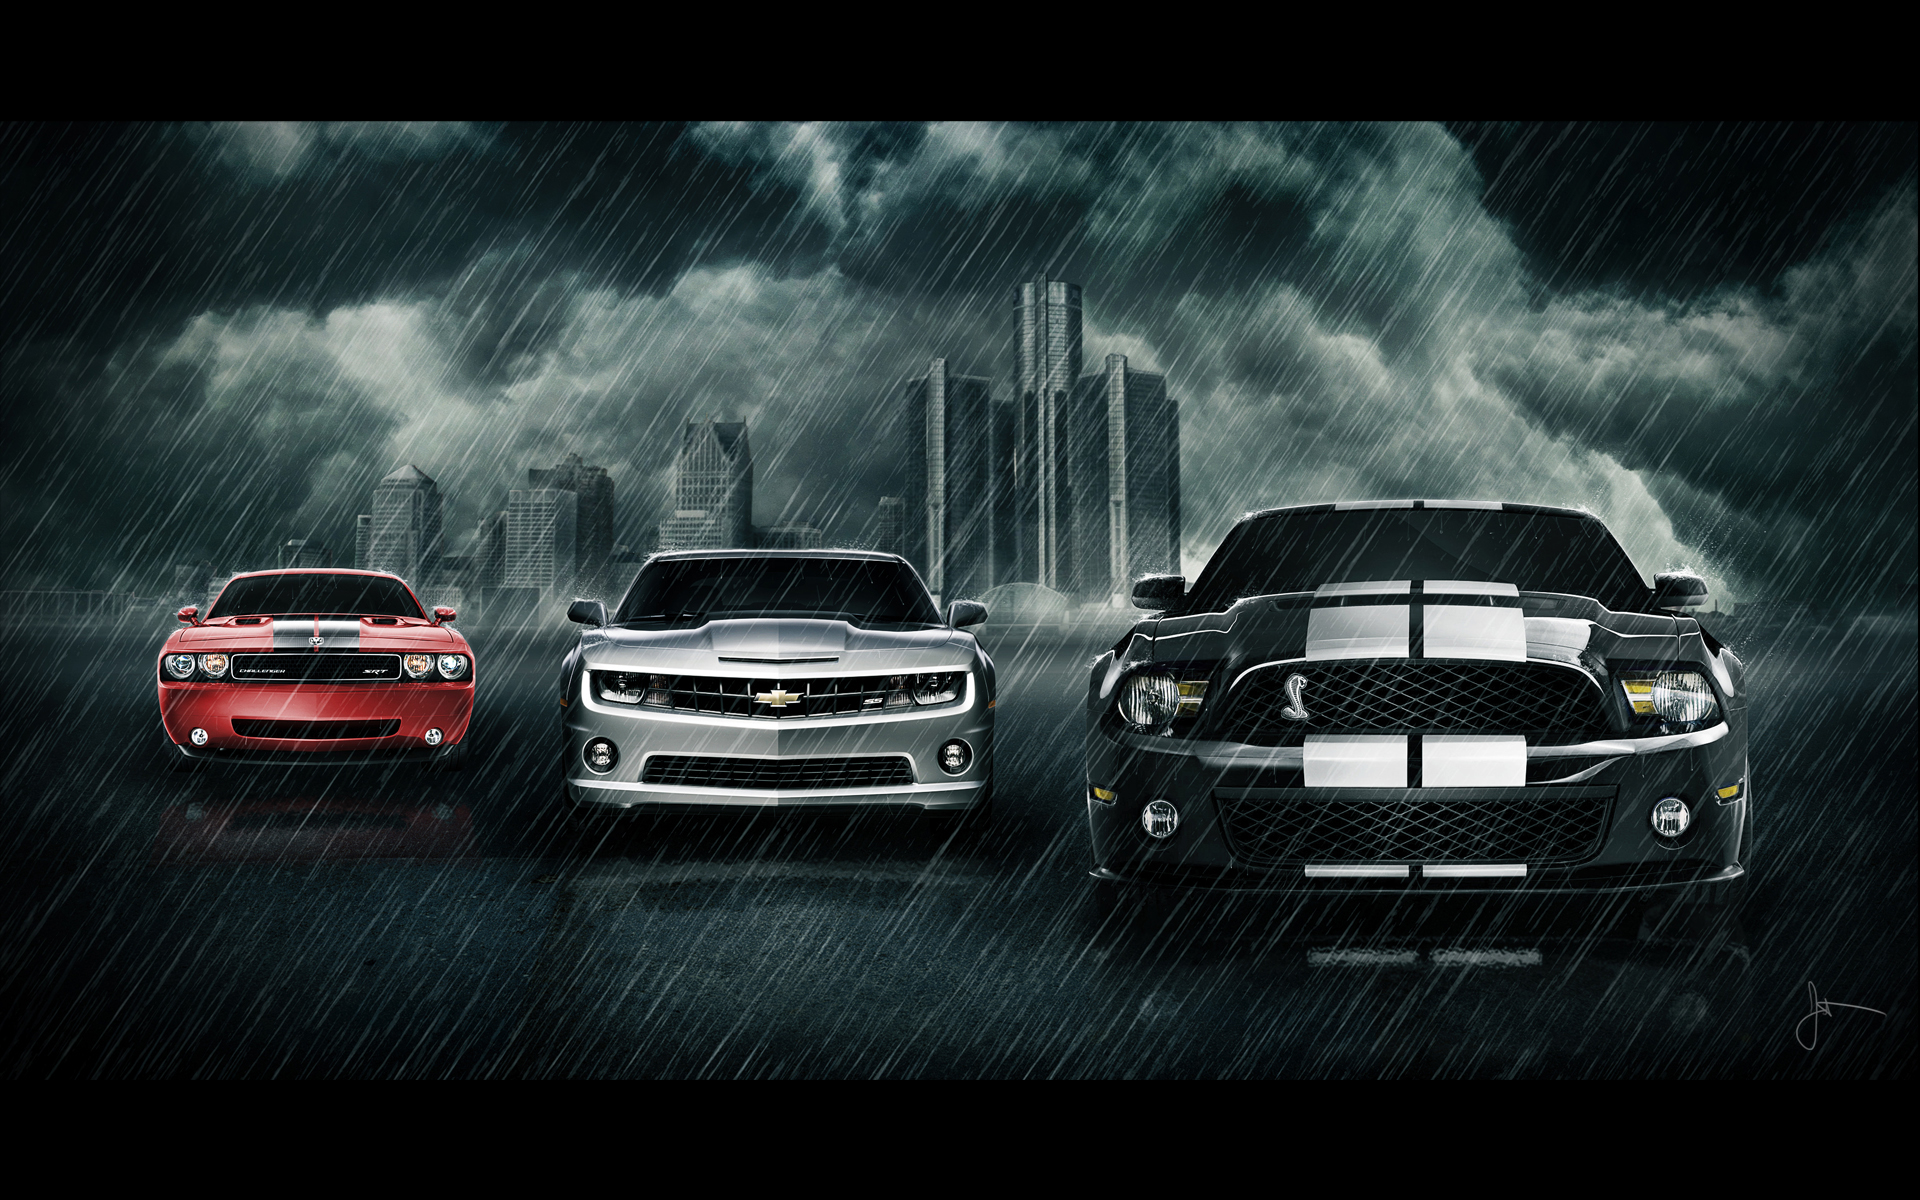 Vehicles - Car  - Cars - Mustang - Camaro - Challenger - Muscle - Rain - Mustang Camaro Challenger Wallpaper